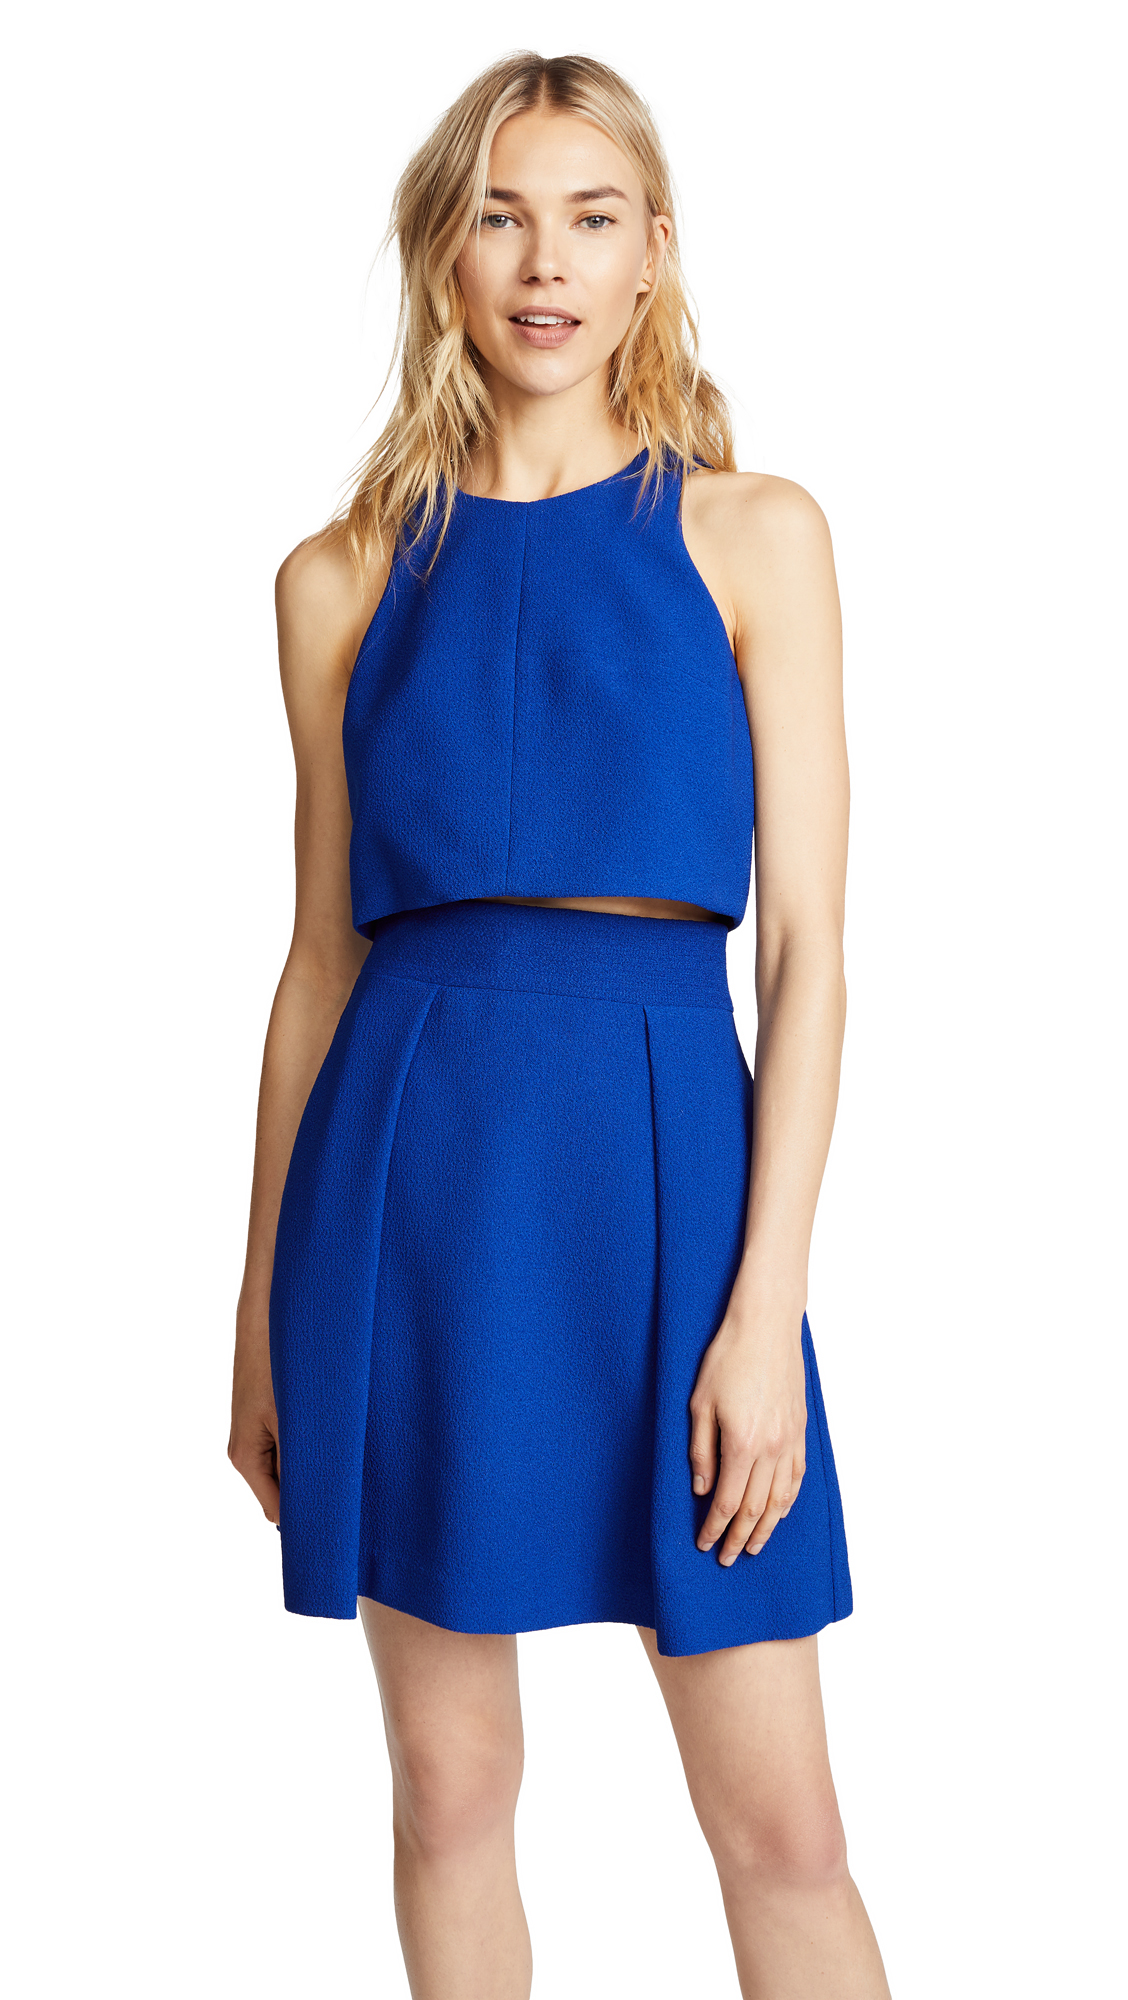 Black Halo Sanibel 2 Piece Mini Dress - Cobalt